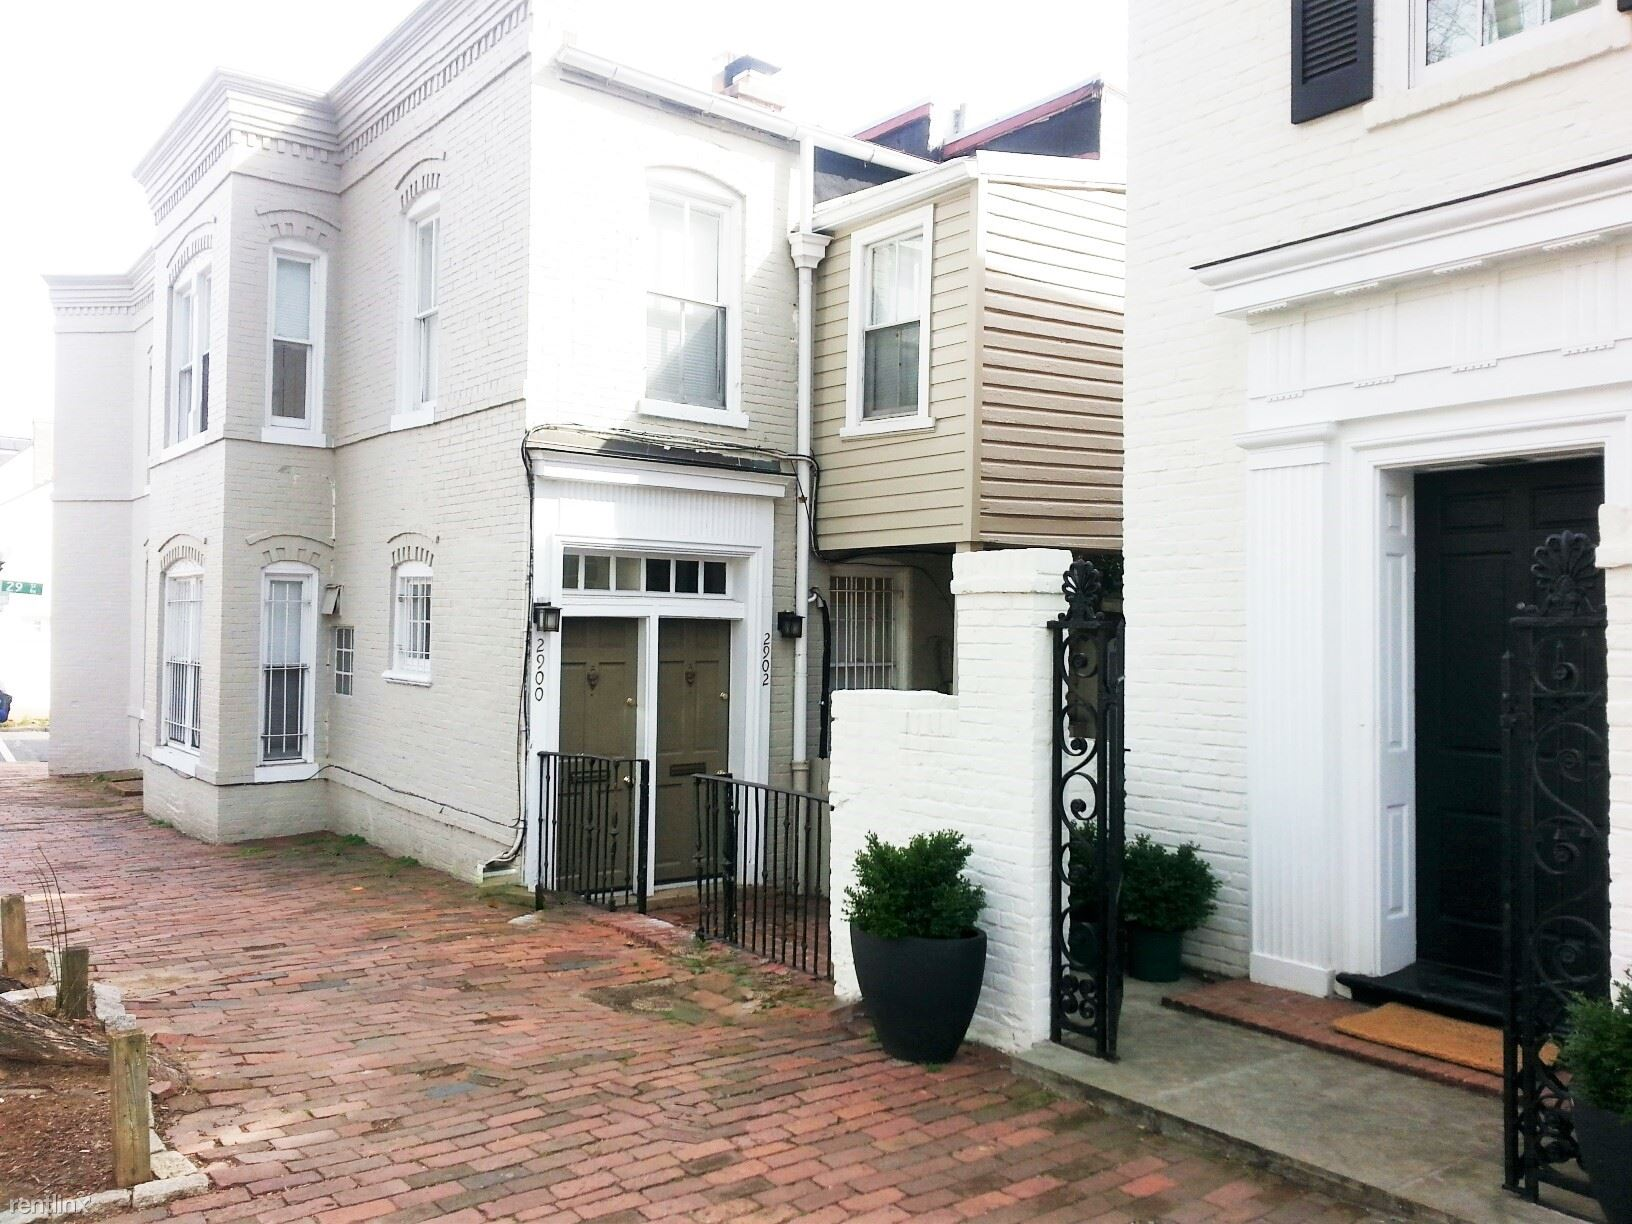 2900 Dumbarton St NW, Washington, DC - $2,870